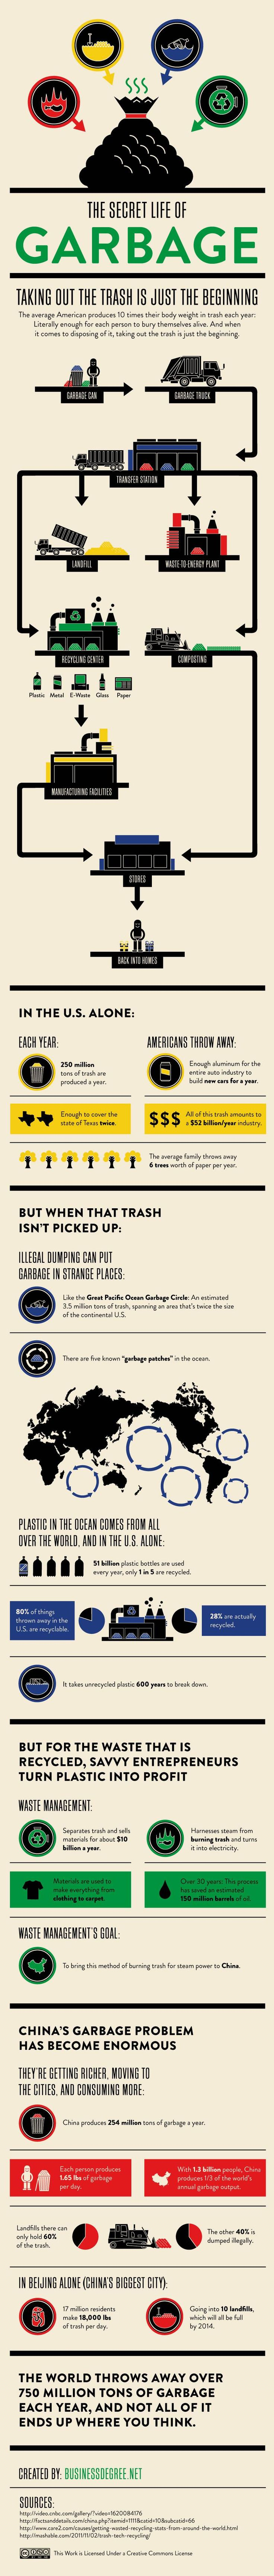 The world throws away more than 750 million tons of garbage each year, and not all of it ends up where you think.